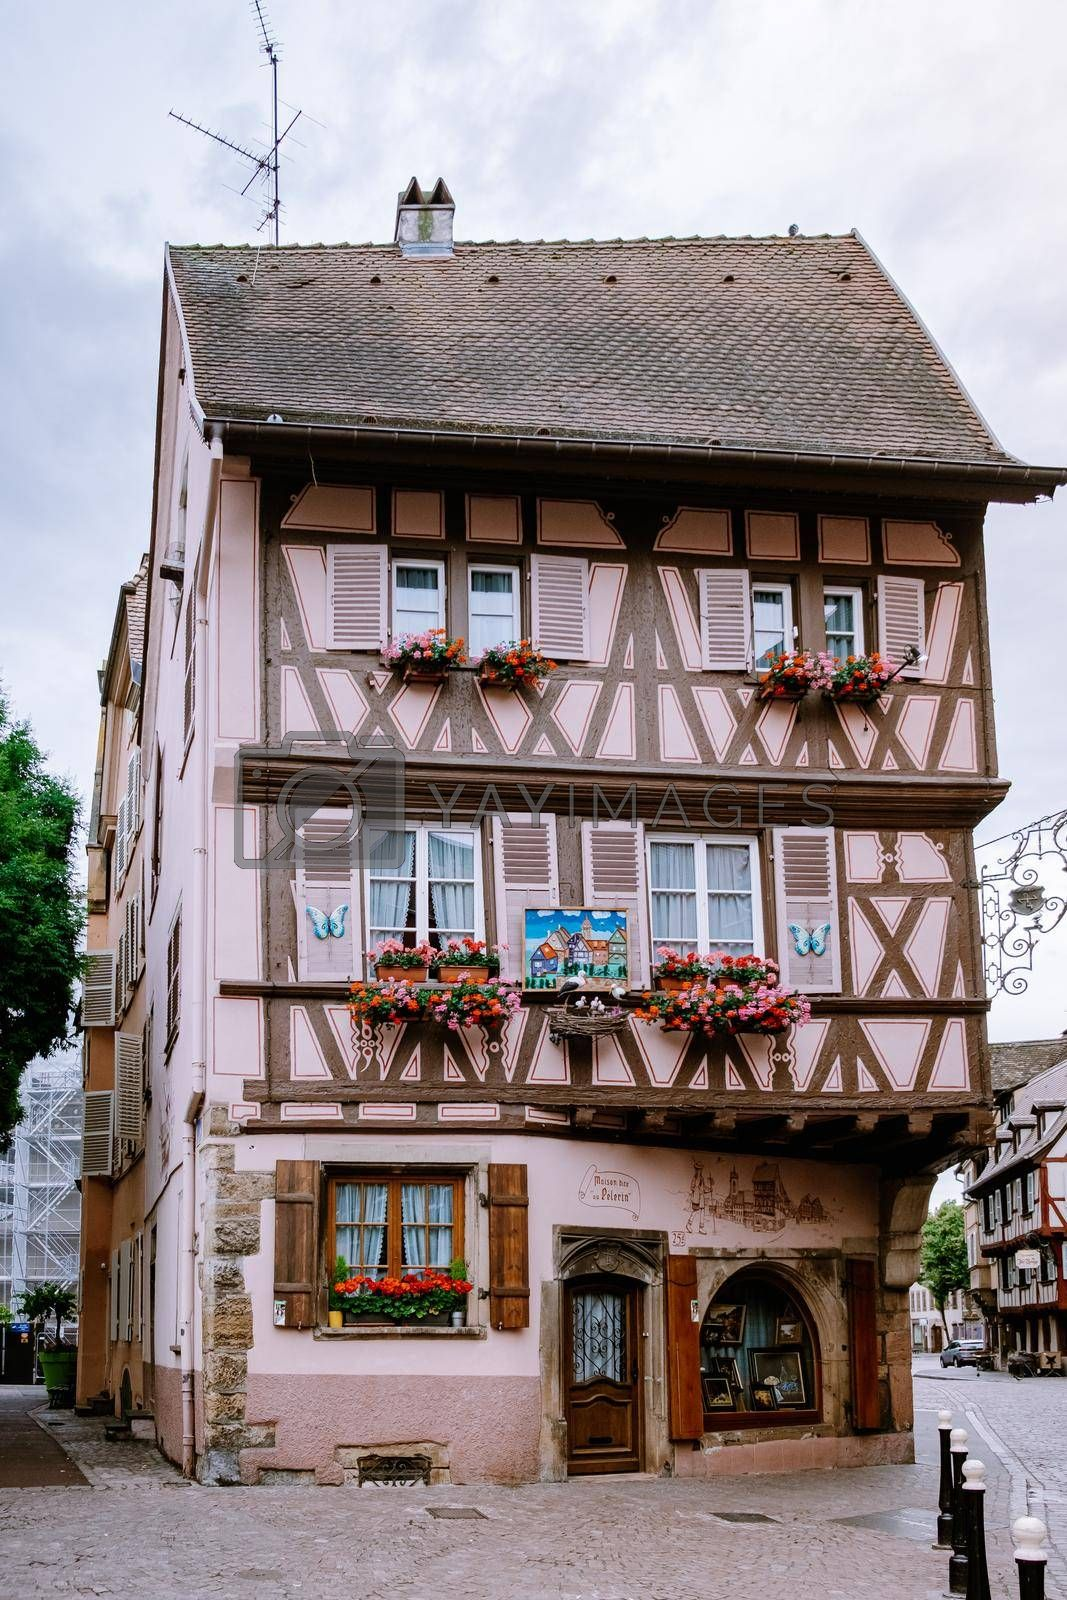 Colmar, Alsace, France June 2020. Petite Venice, water canal and traditional half timbered houses. Colmar is a charming town in Alsace, France. Beautiful view of colorful romantic city Colmar